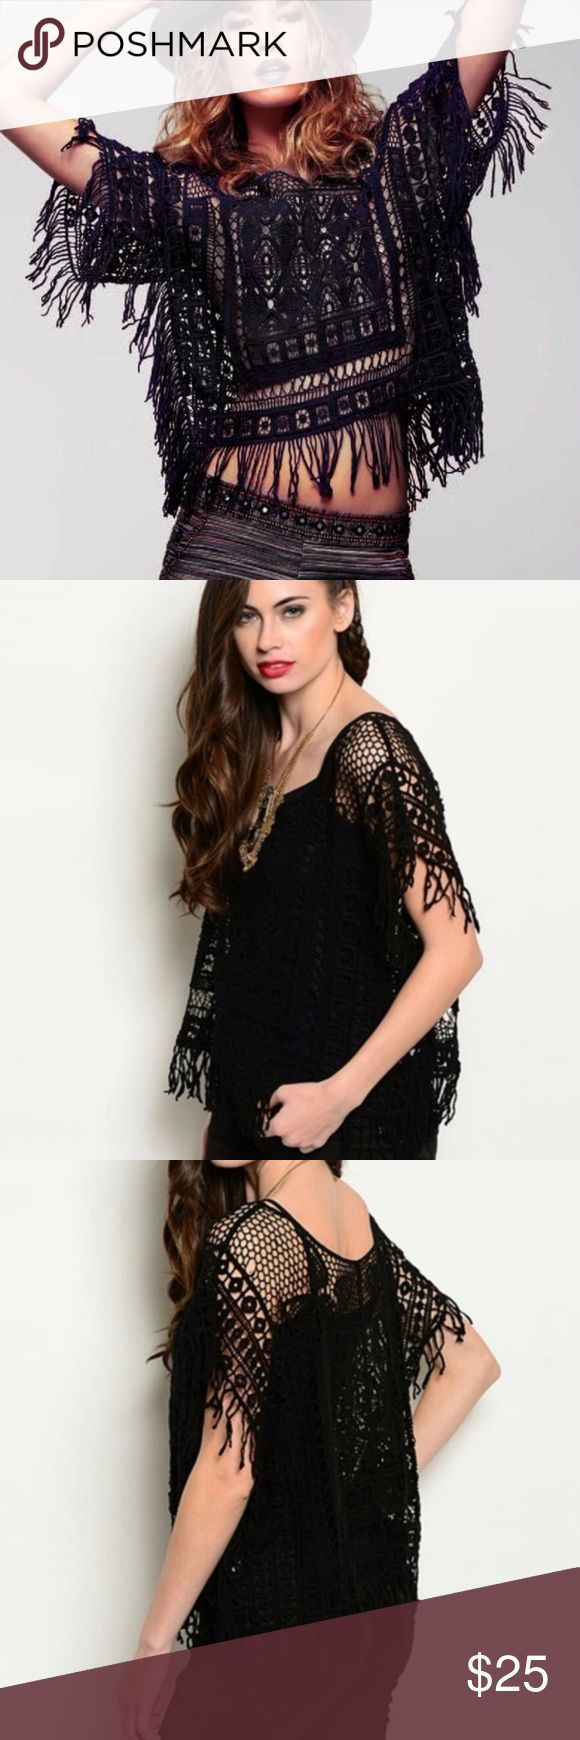 BLK FRI SALE! Crochet Fringe Top Black Open Crochet Fringe Trim Top   Layer it, wear it with a nude bra or nothing underneath ;)  ONE SIZE ONLY (size options are for exposure)  Pit to pit 24in Pit to hem 12in Shoulder to bottom of hem fringe 22in Sleeve length from collar 7in  NWOT boutique direct from makers Tops